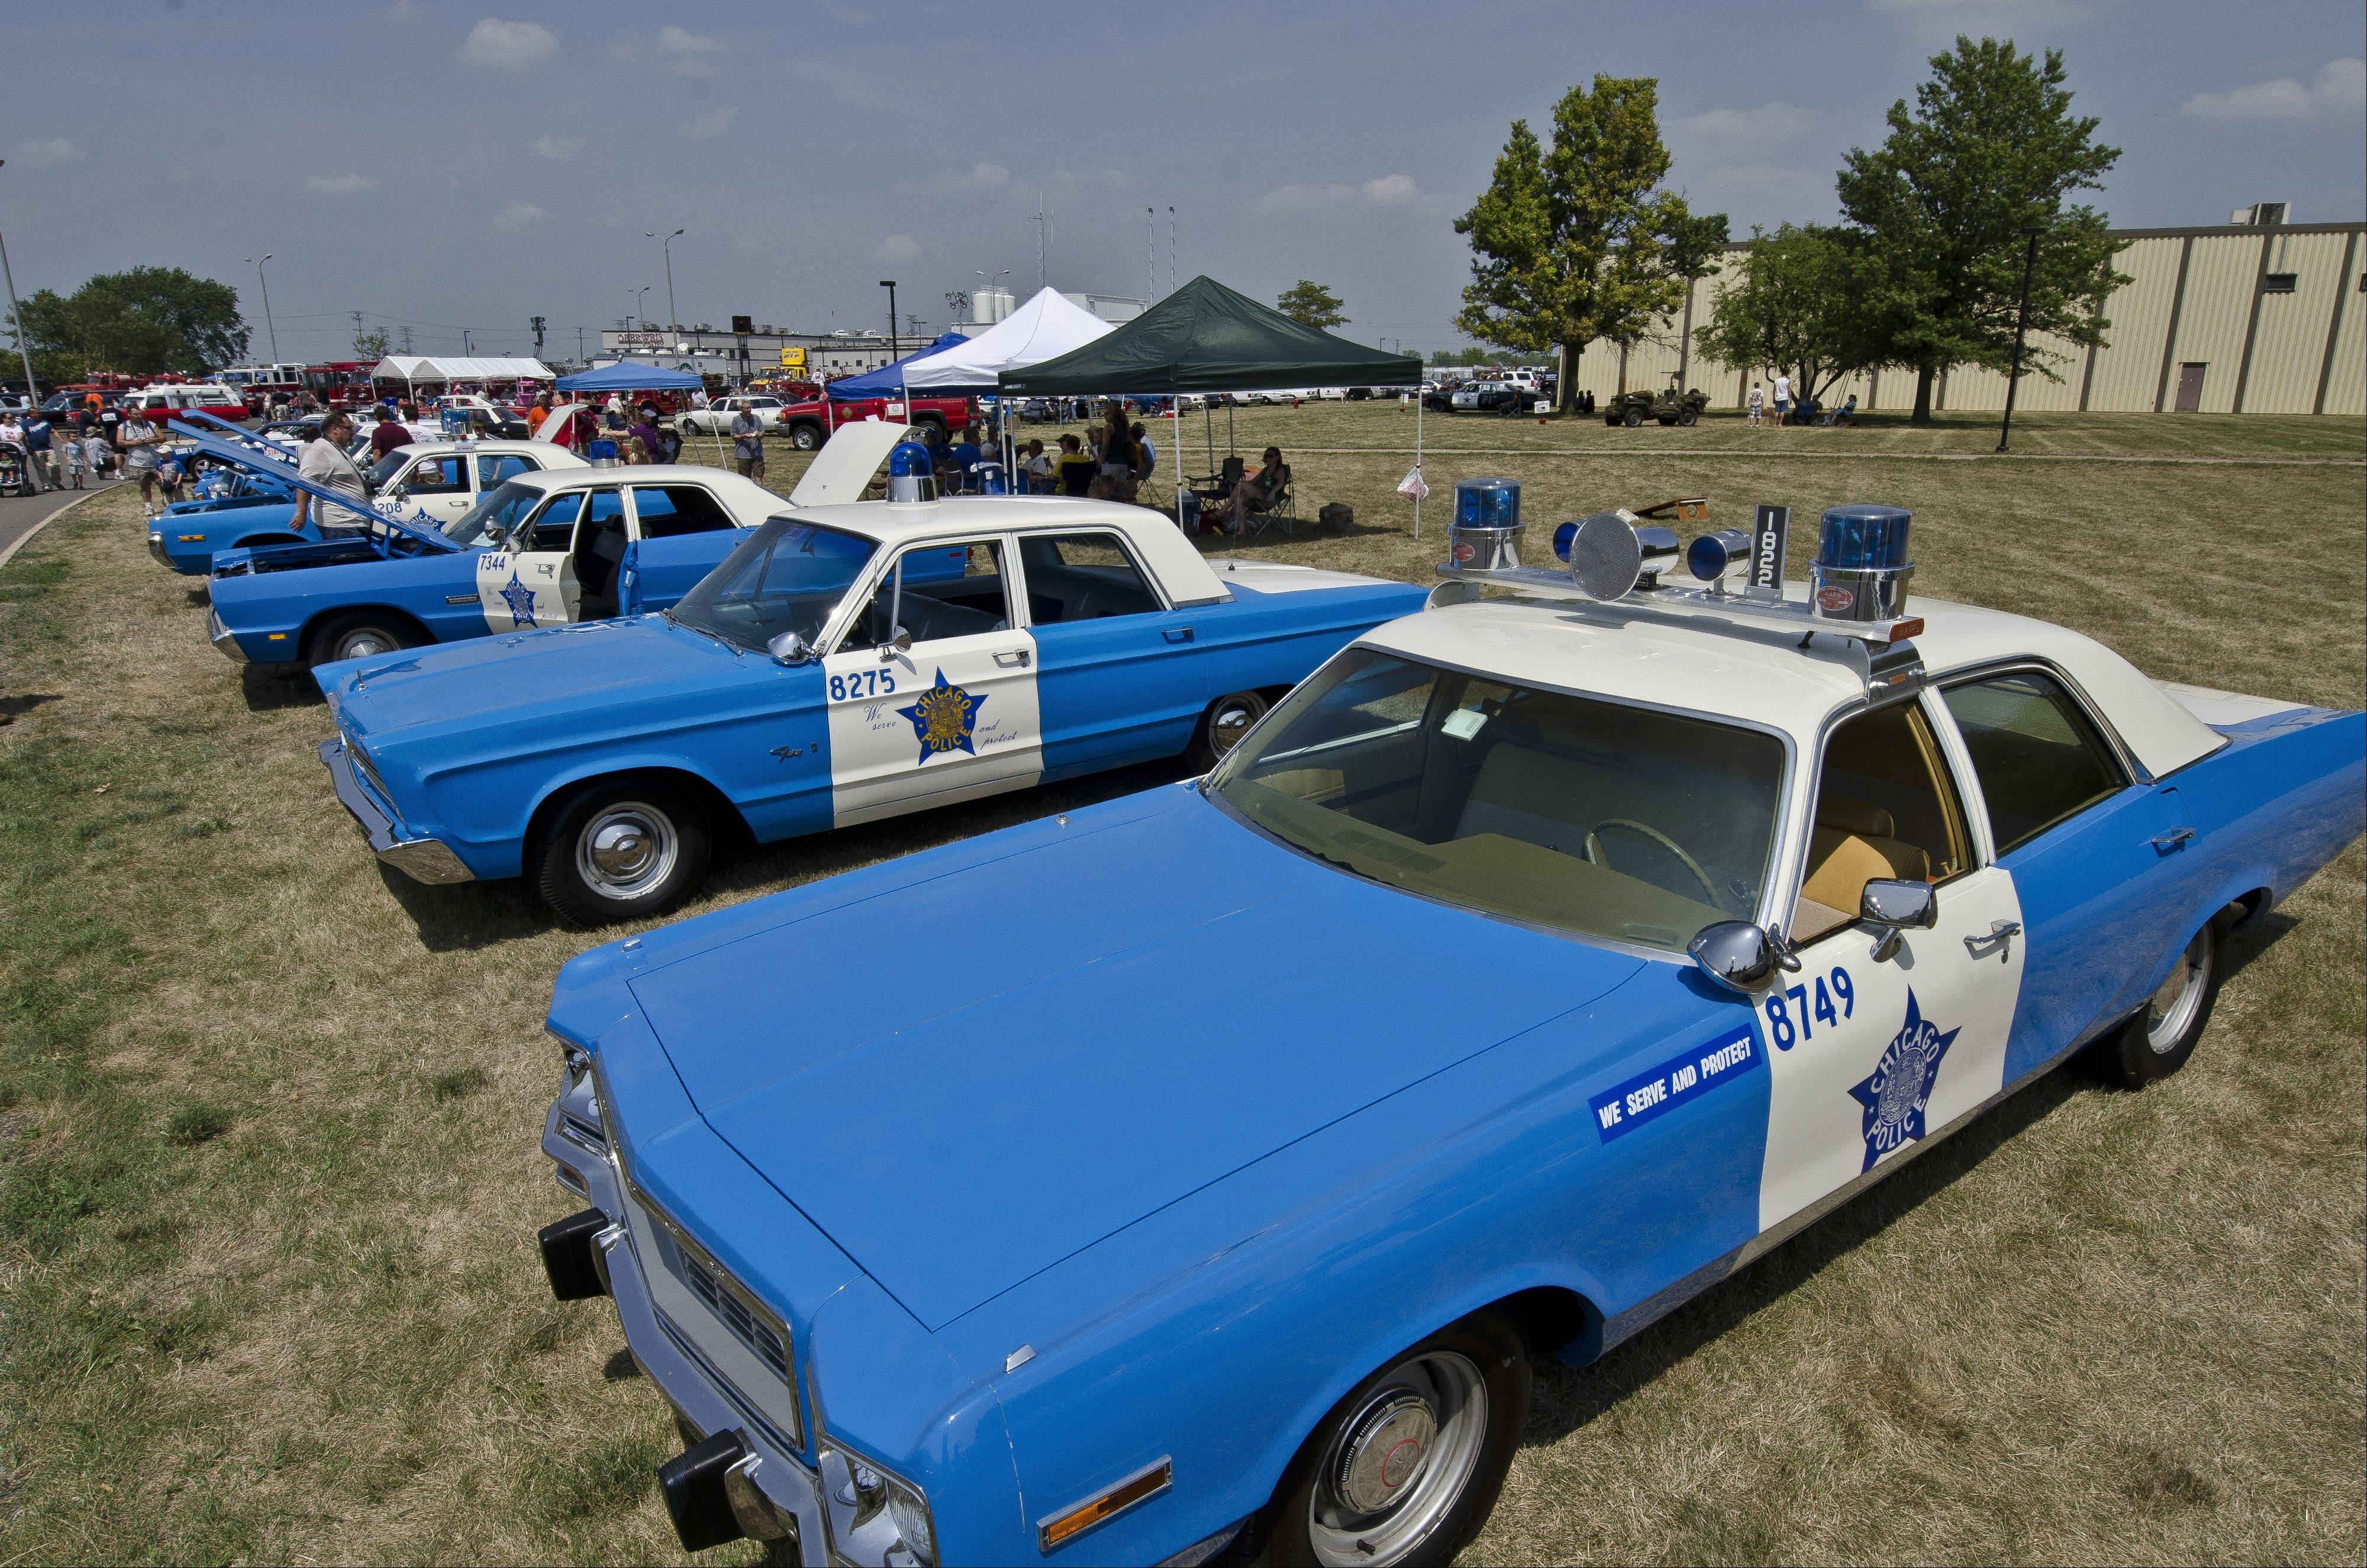 An entire fleet of classic Chicago police cars attend the annual Chicagoland Emergency Vehicle Show, which was held last weekend in North Aurora.